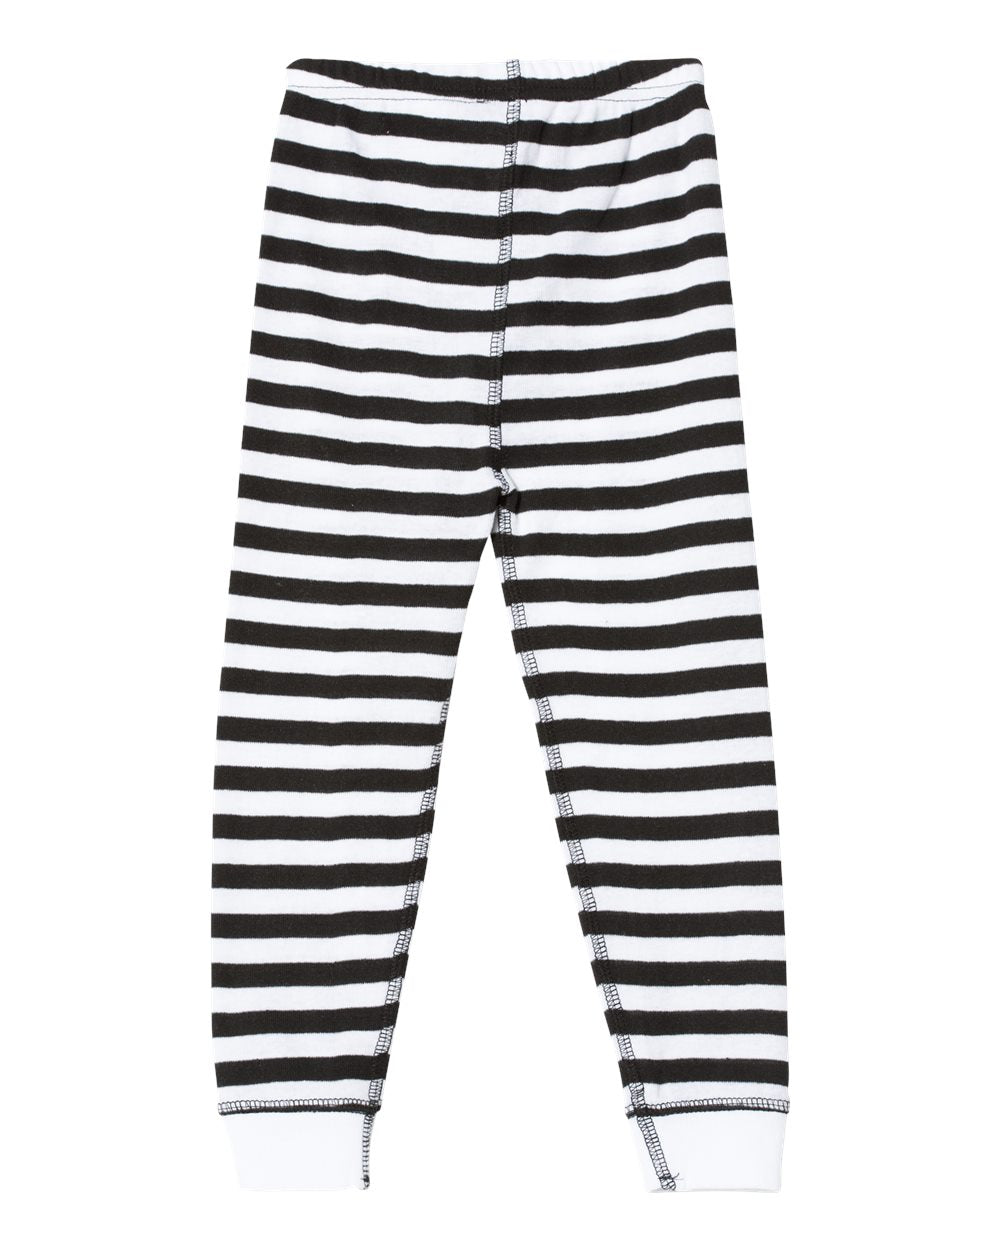 Striped Lounge Pants (Baby/Toddler/Kids)